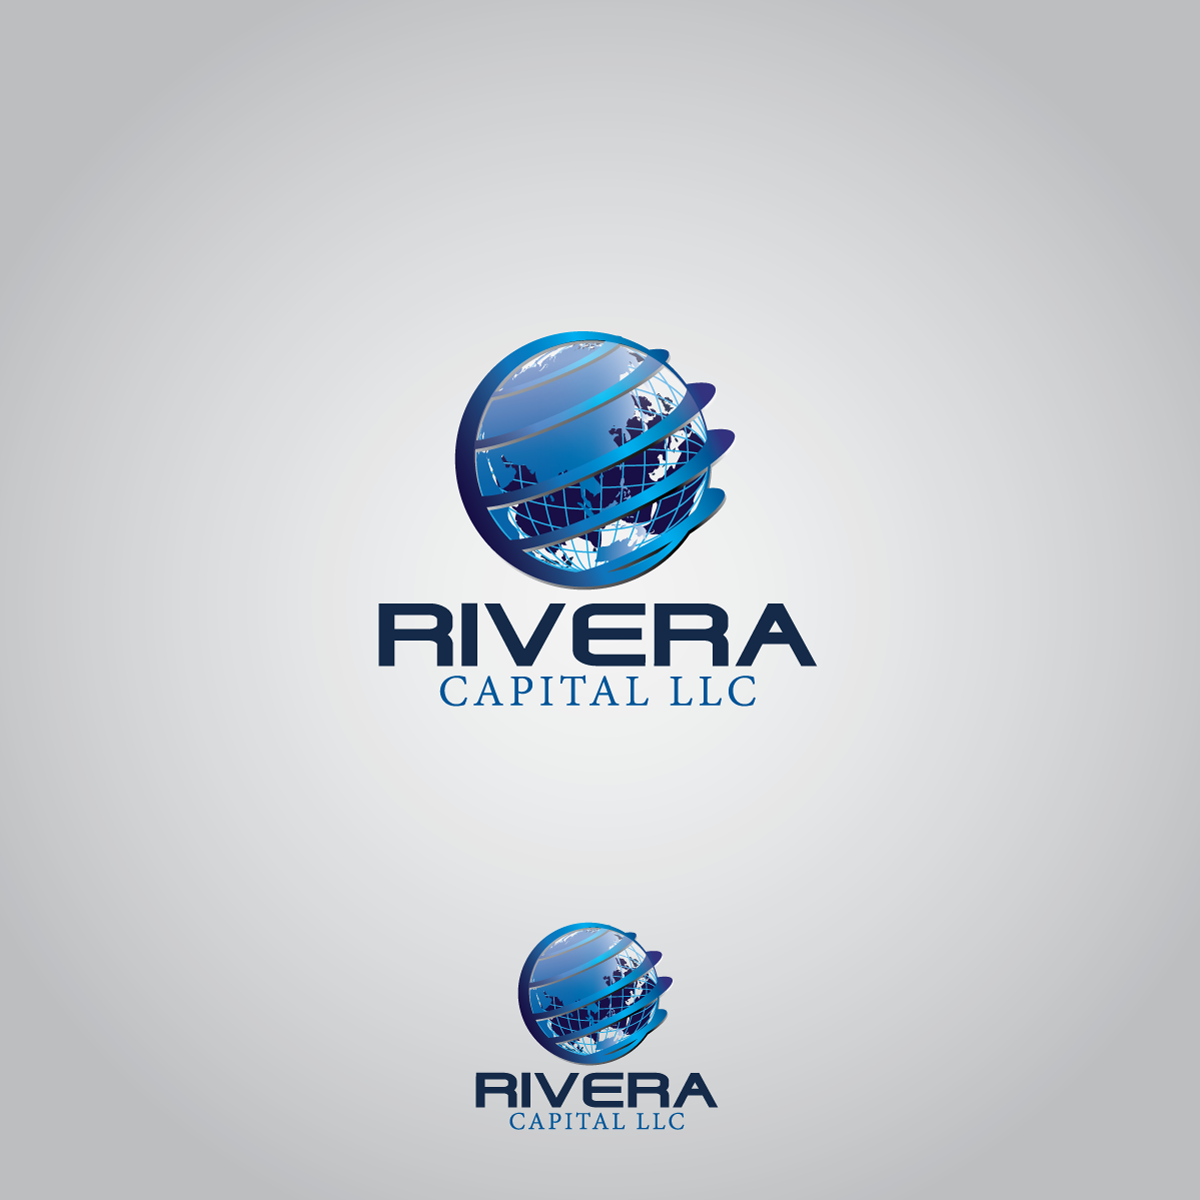 Logo Design by rockin - Entry No. 15 in the Logo Design Contest Logo Design Needed for Exciting New Company Rivera Capital LLC LLC.